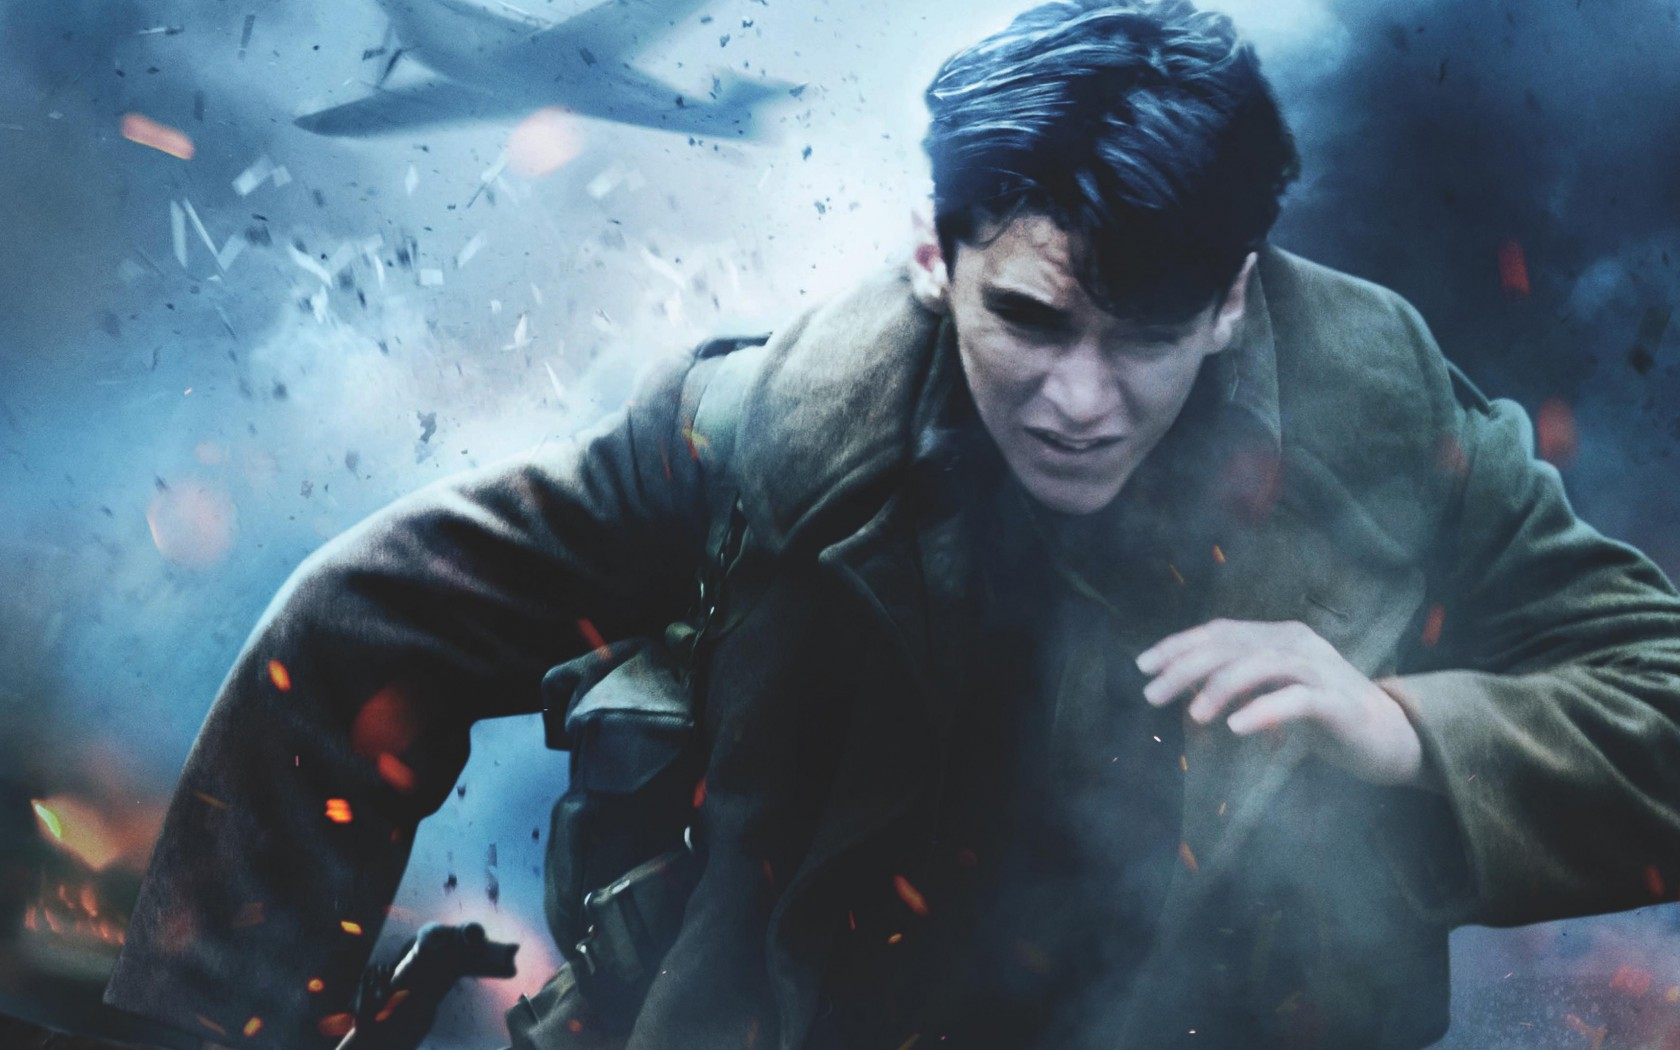 Music Wallpaper Iphone 6 Fionn Whitehead In Dunkirk 2017 Wallpapers Hd Wallpapers